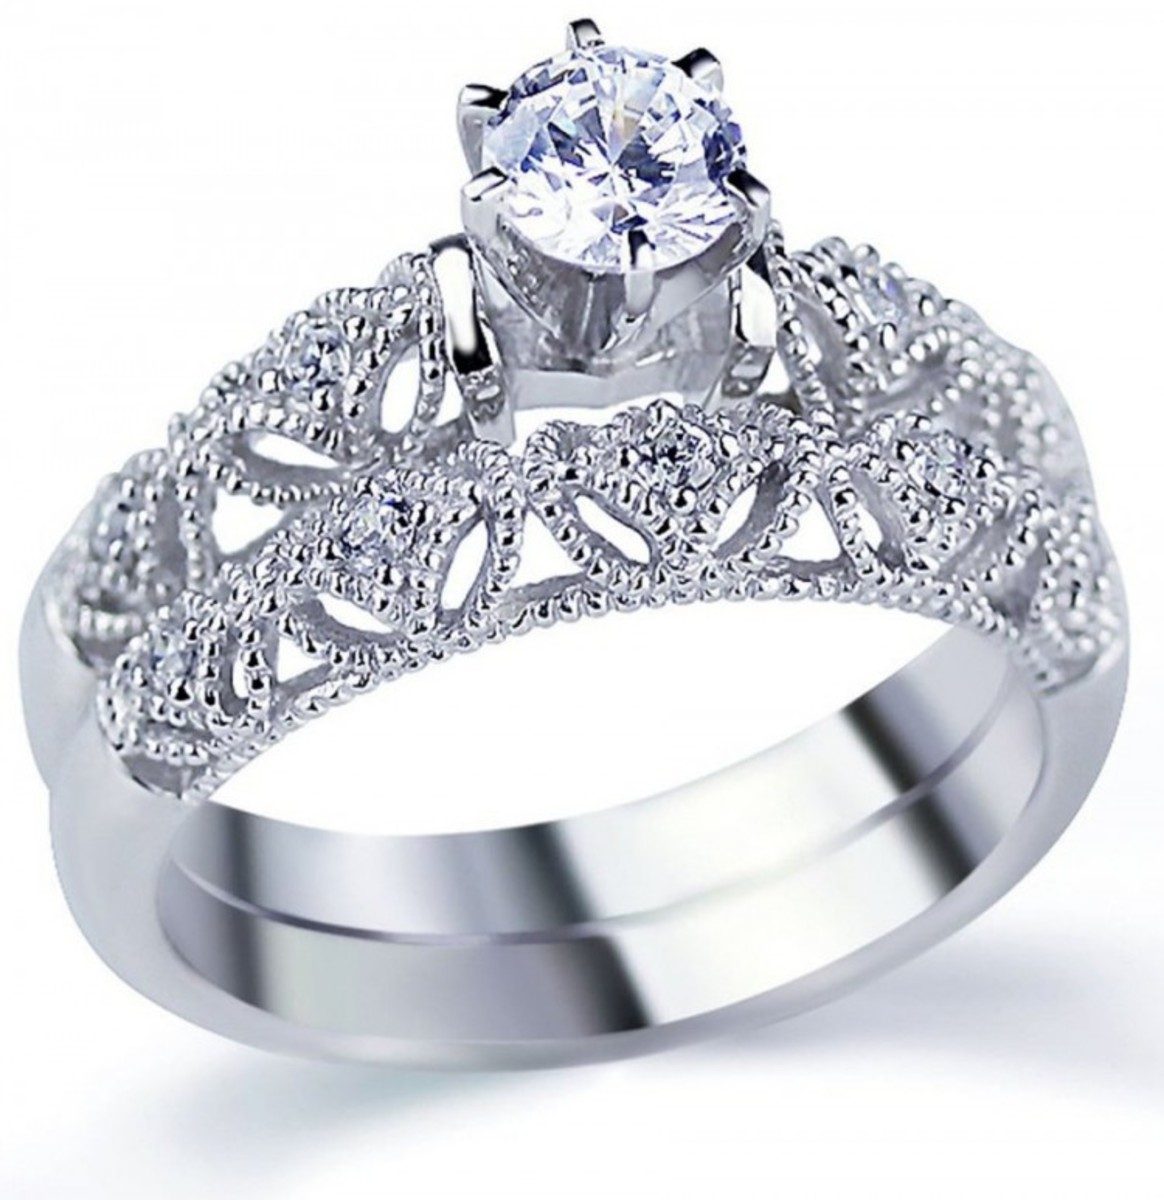 Rhodium plated sterling silver 925 ring